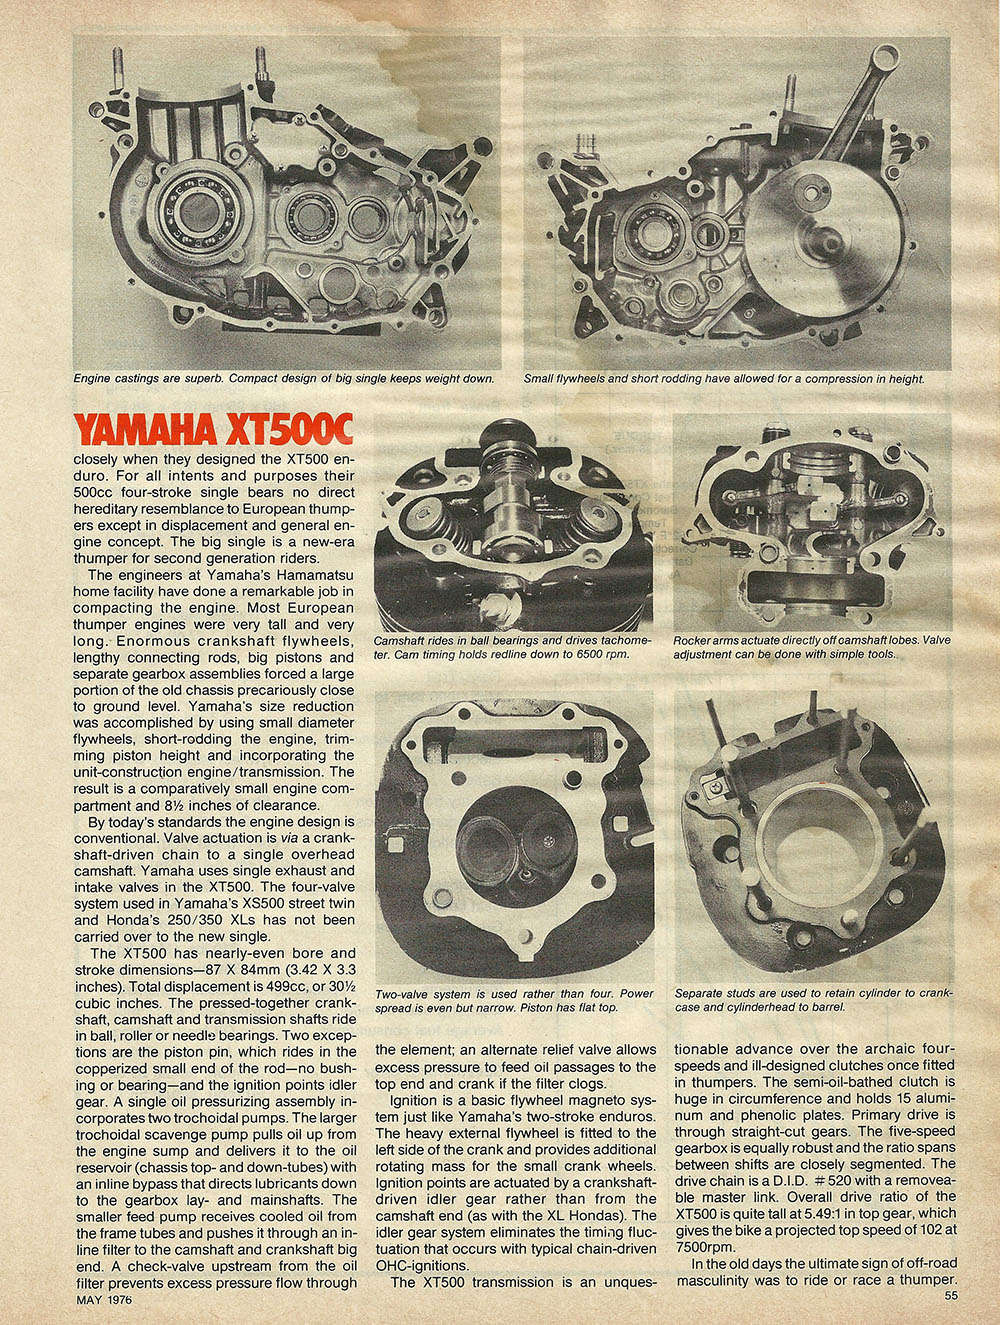 1976 Yamaha XT500C off road test 3.JPG